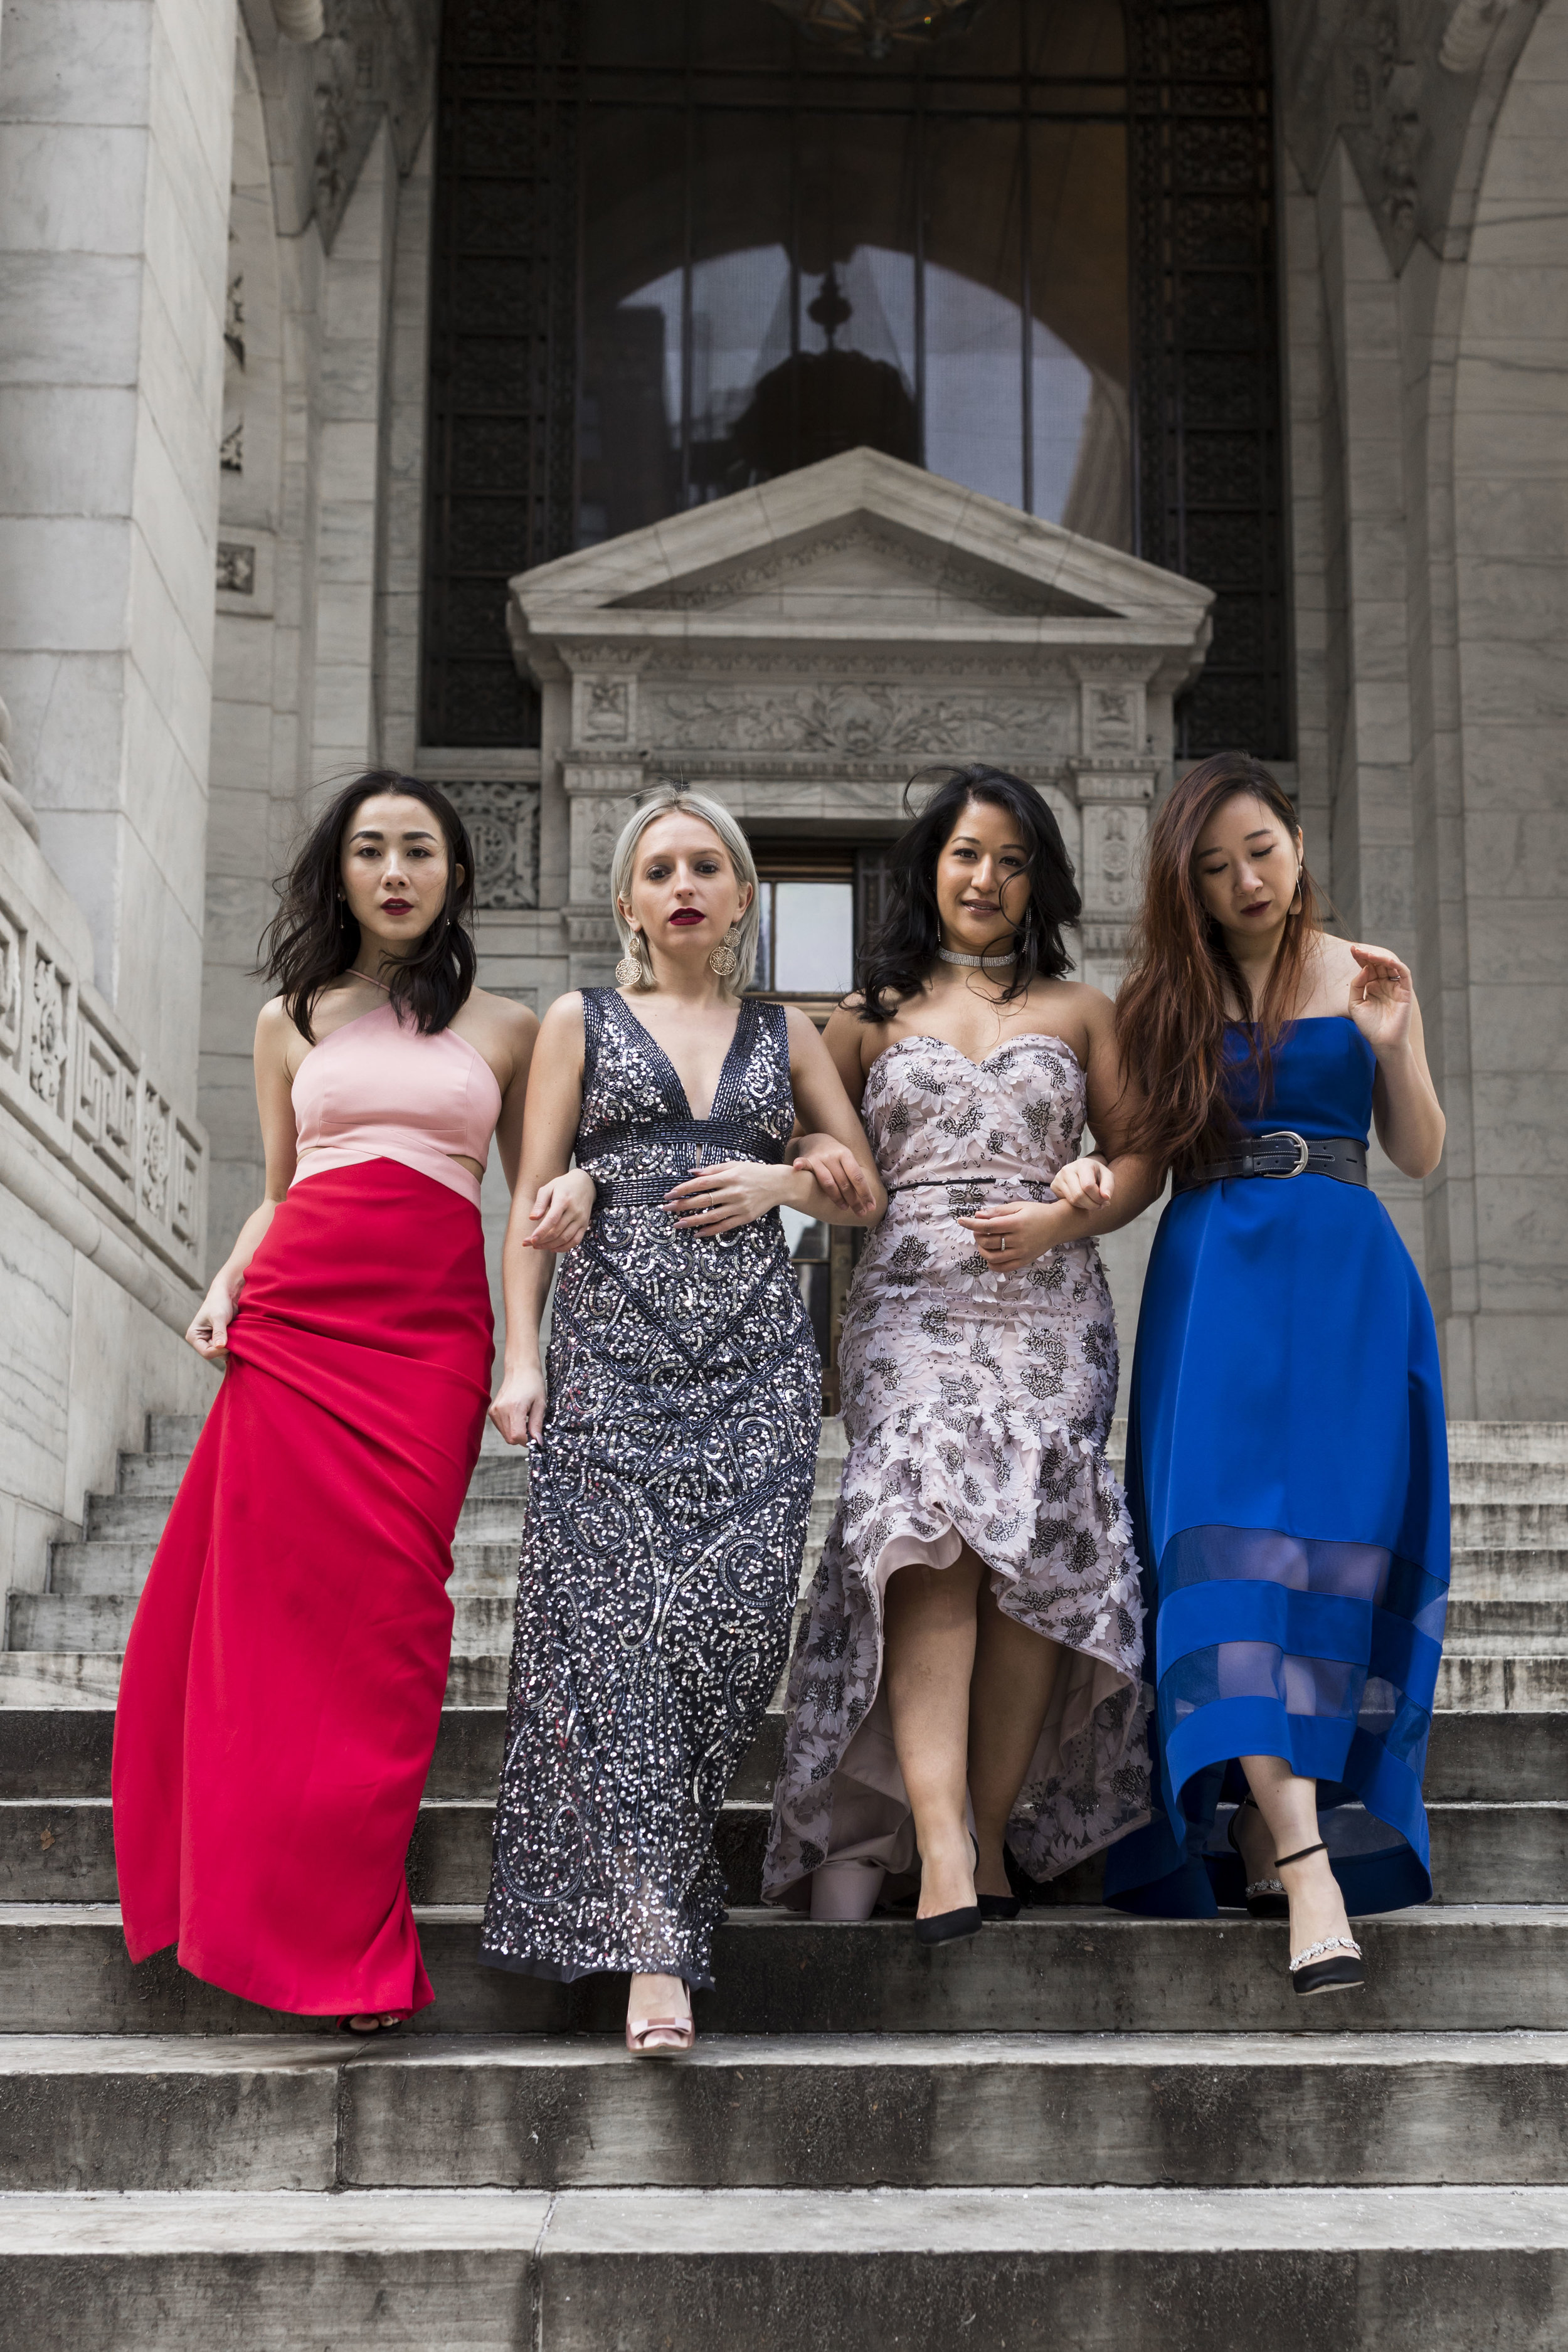 Galentine's Day Outfit Ideas NYPL Galentine Day Photoshoot